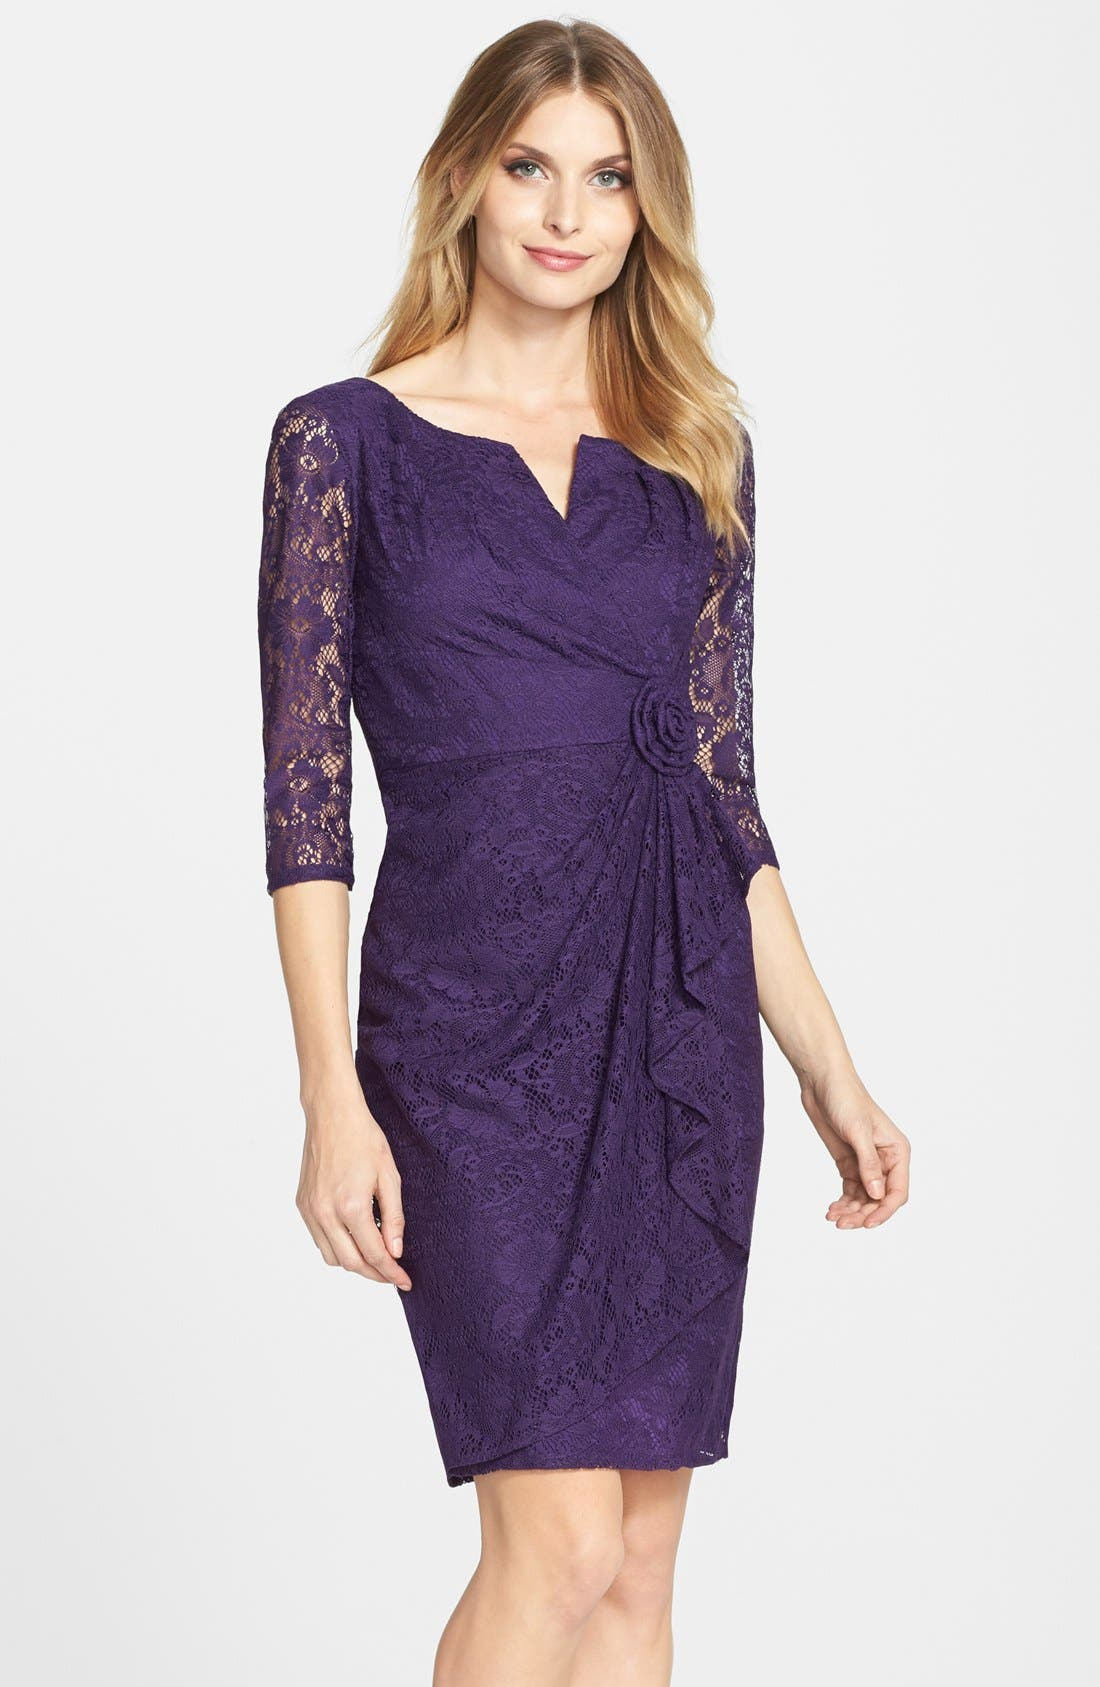 Alternate Image 1 Selected - Adrianna Papell Rosette Side Lace Dress